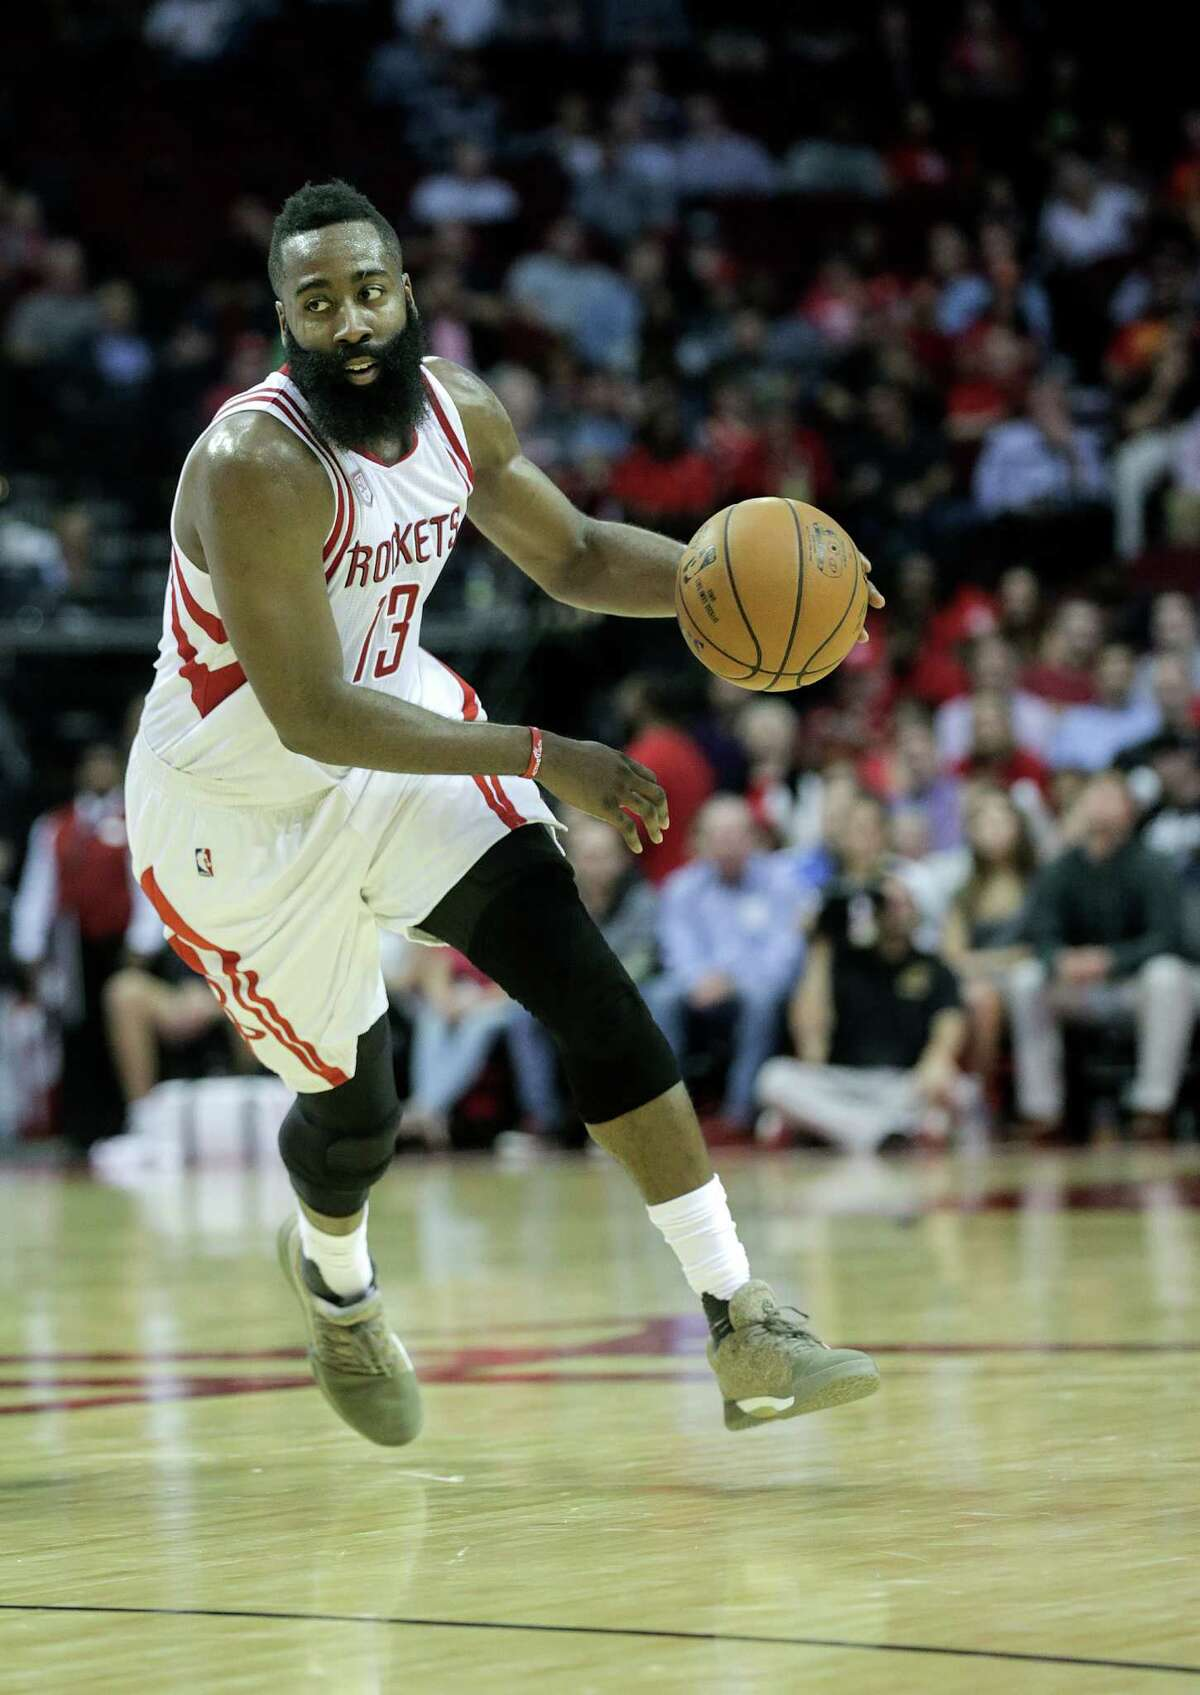 Houston Rockets guard James Harden (13) drives the ball up court during NBA game action against Philadelphia 76ers at the Toyota Center on Monday, Nov. 14, 2016, in Houston.